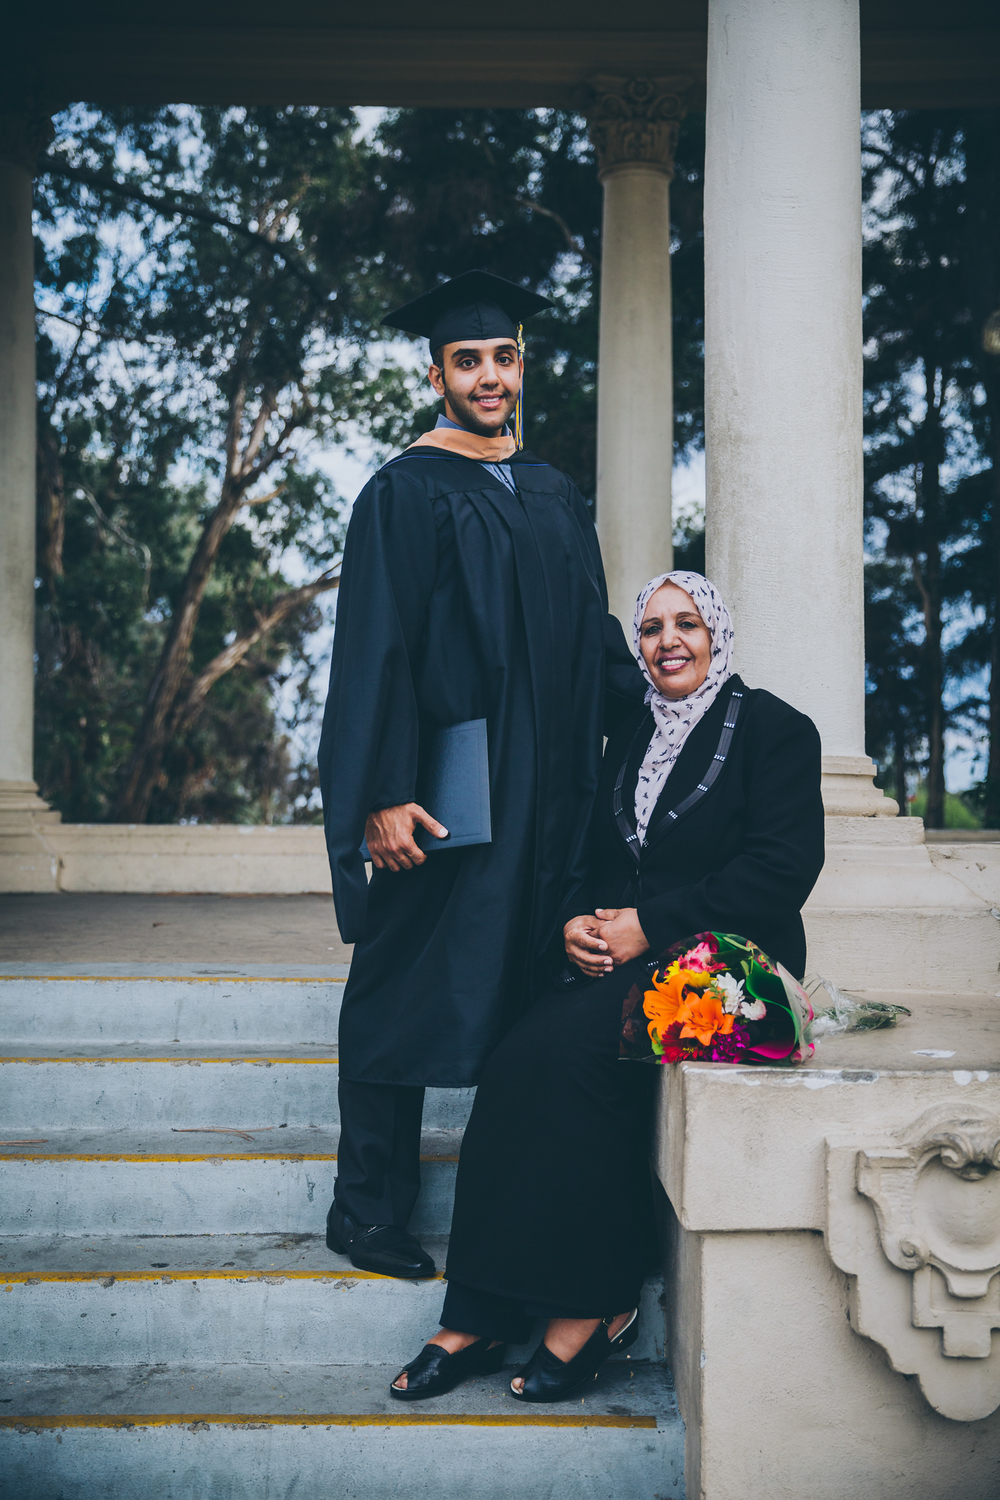 20150910-20150910 Ismail and Mom Portrait 03.jpg